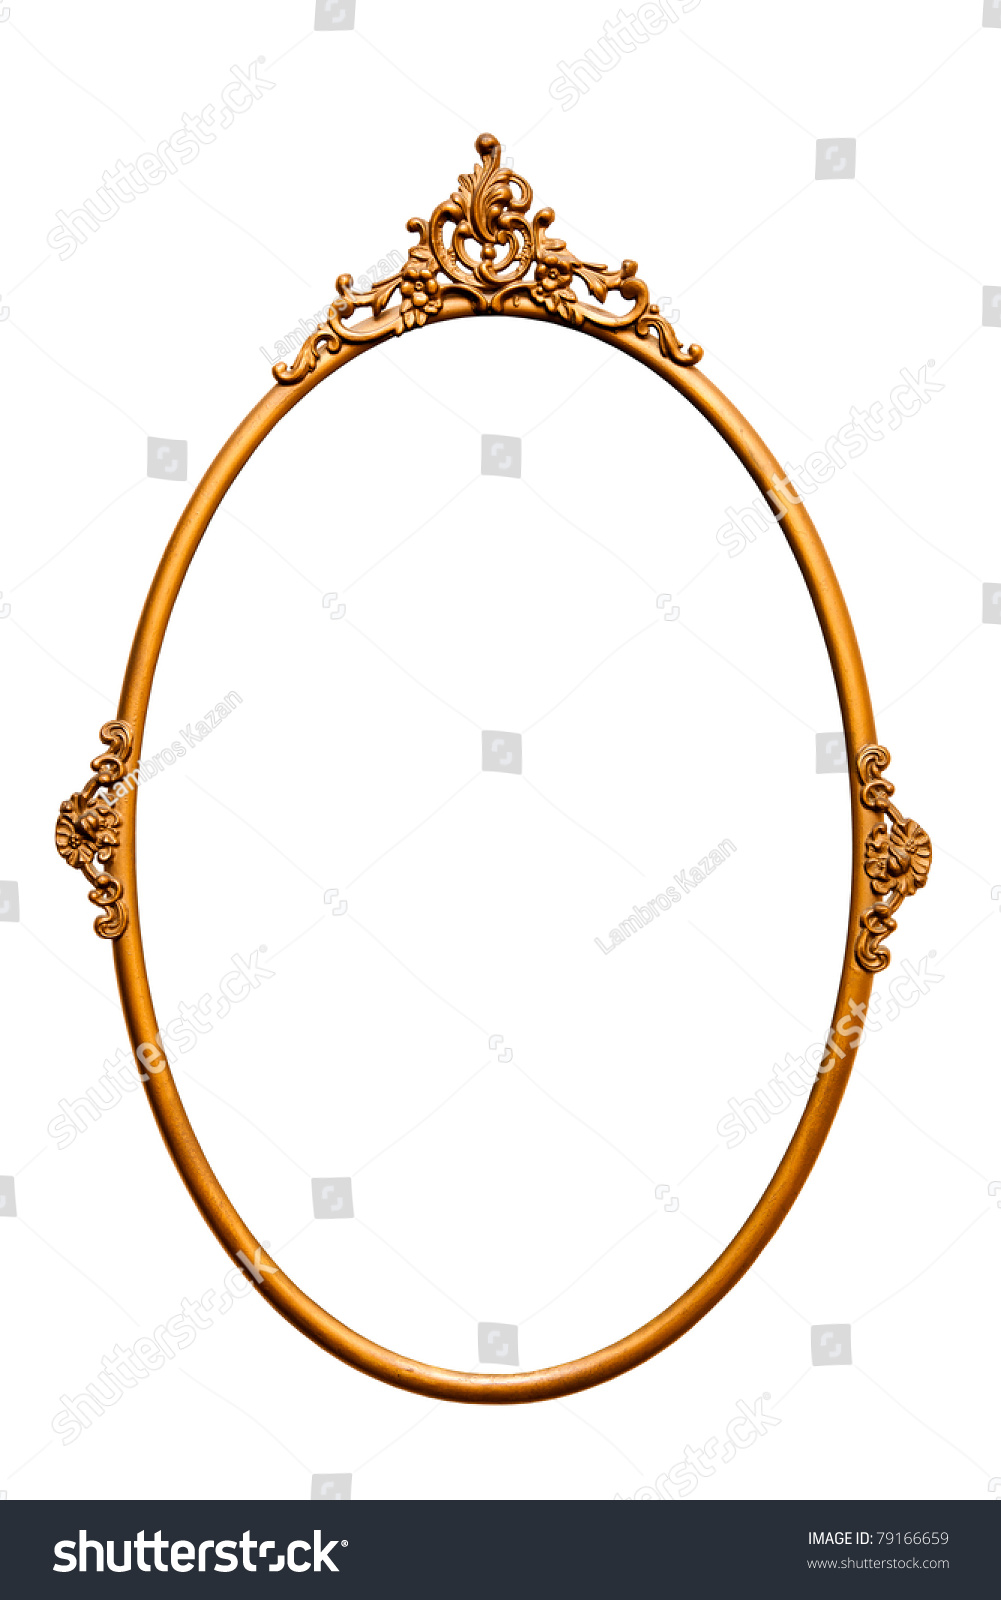 golden retro mirror frame isolated on white clipping paths included